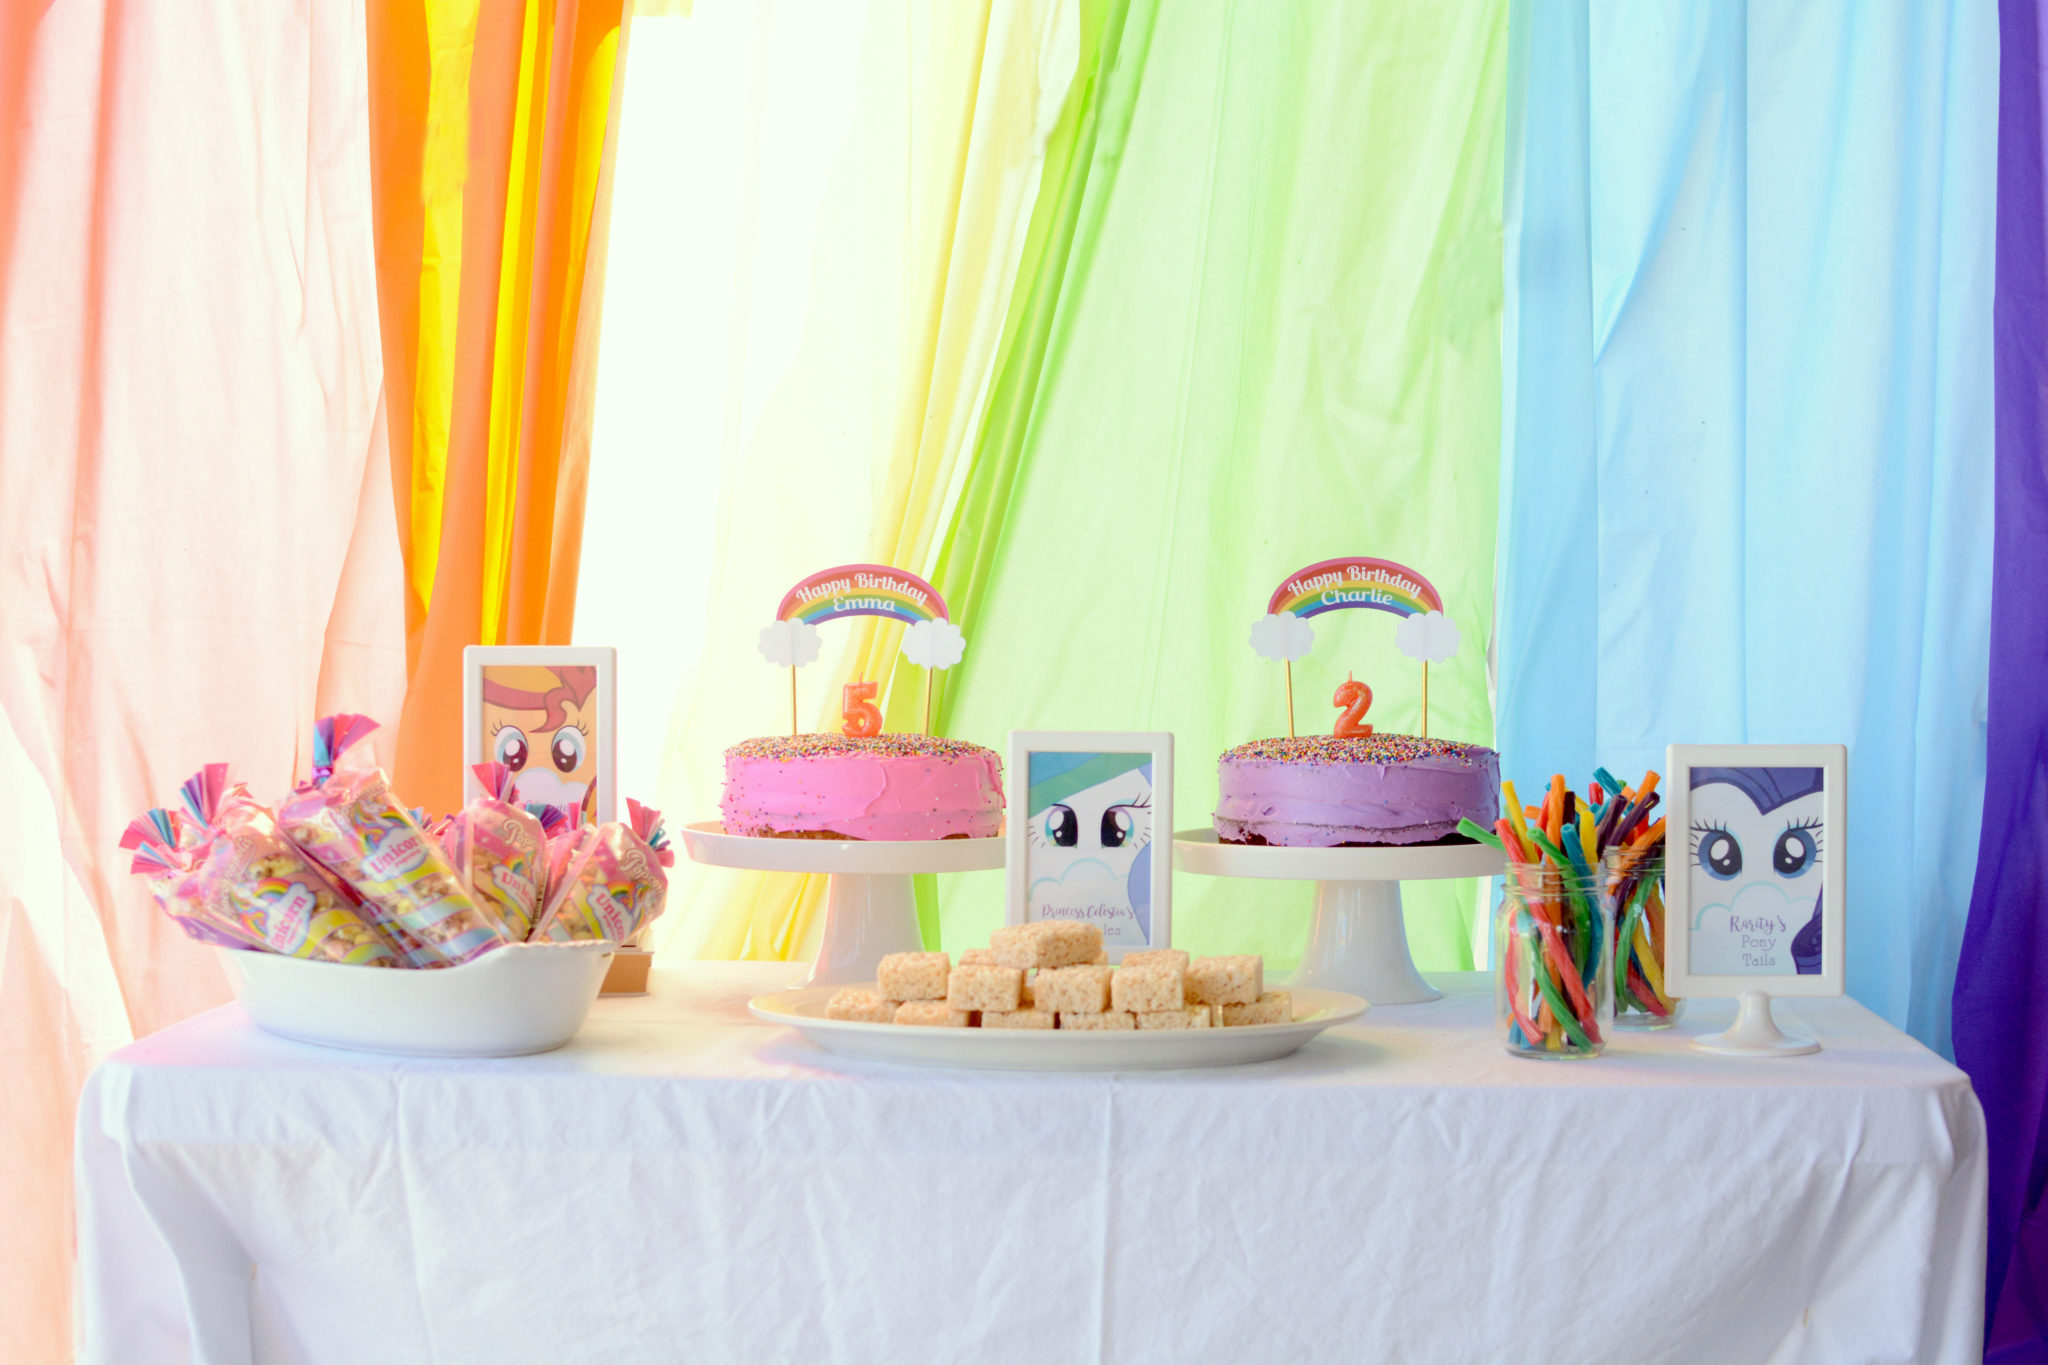 Pleasing A Magical My Little Pony Birthday Party Plus Free Printables Funny Birthday Cards Online Alyptdamsfinfo